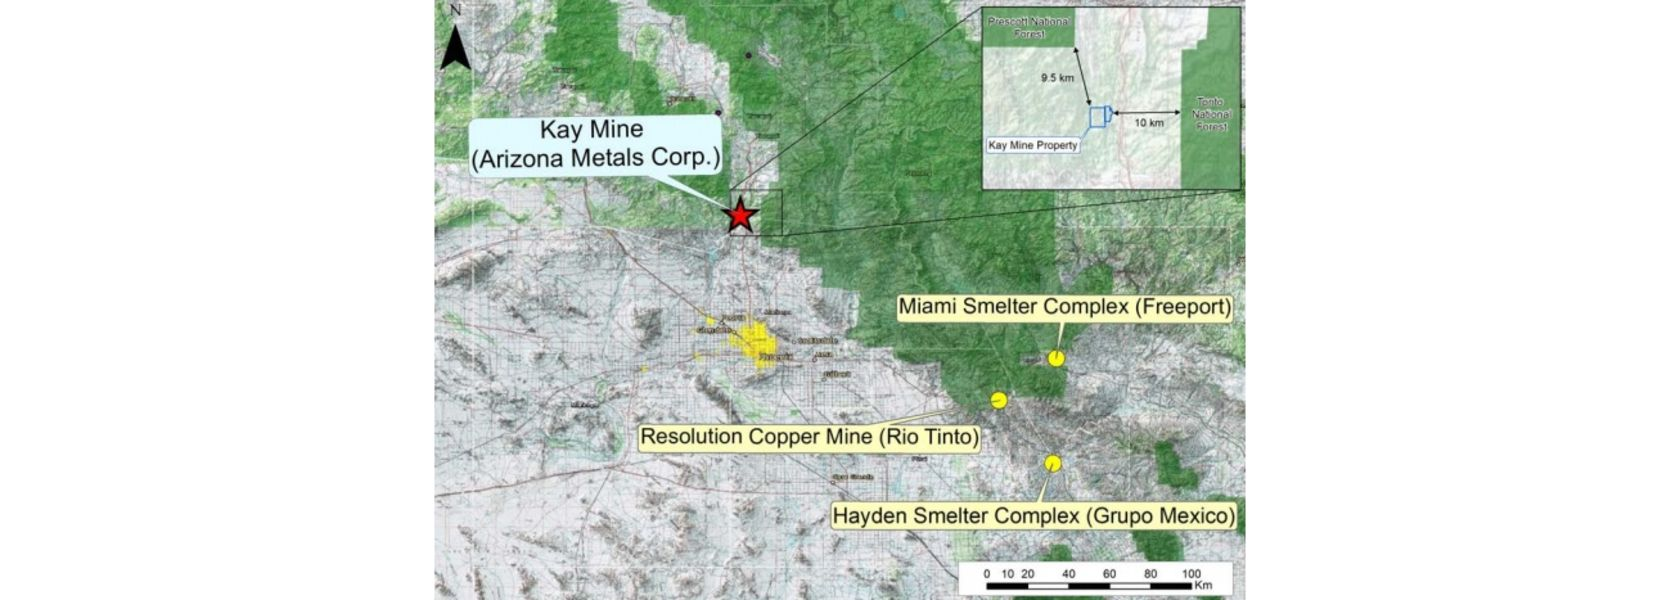 Drilling points to more potential at Kay Mine